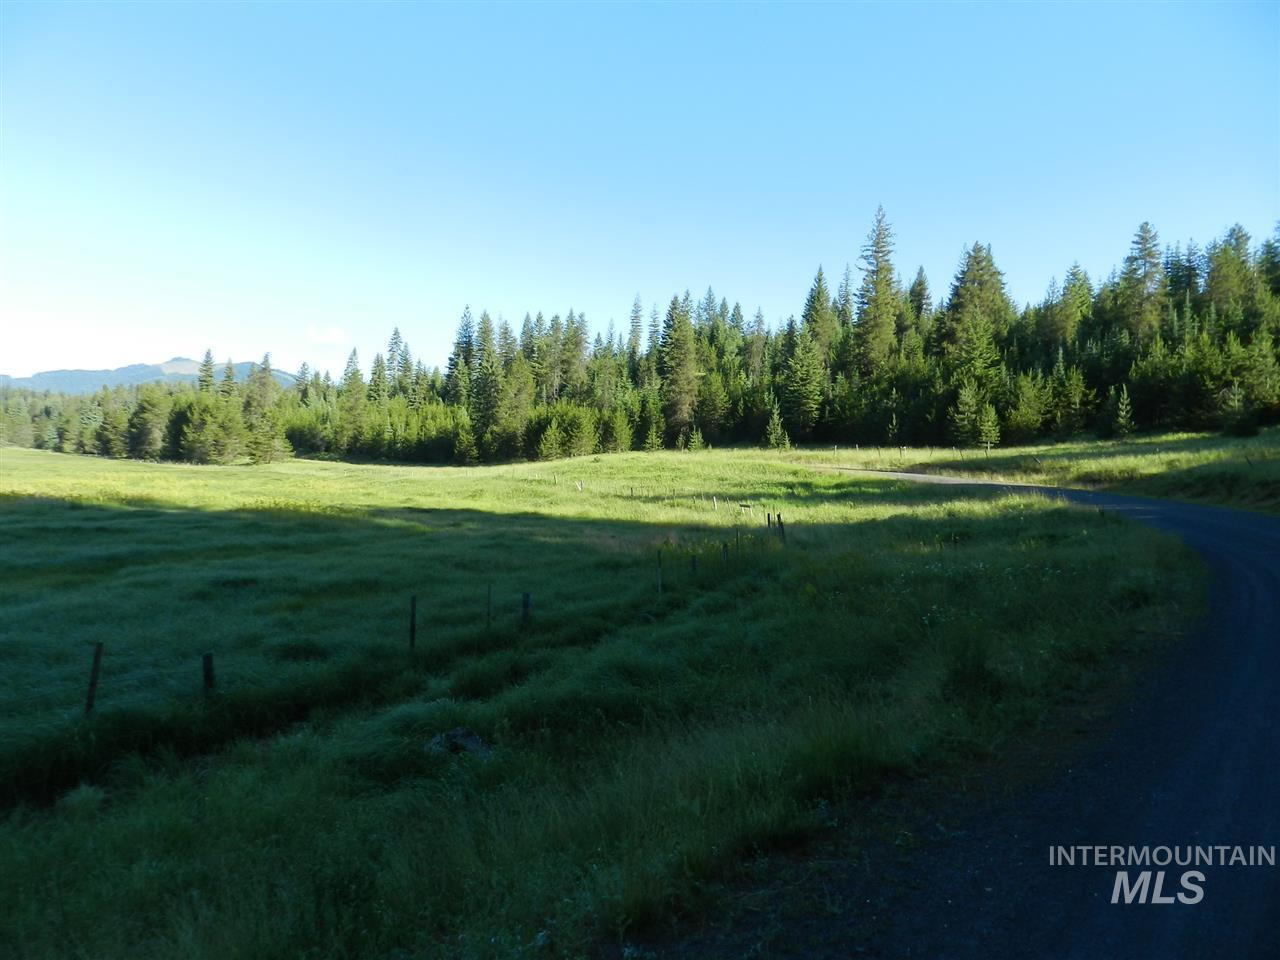 Agricultural Land for Sale at NNA fsr 377/Palouse Divide Road NNA fsr 377/Palouse Divide Road Bovill, Idaho 83806